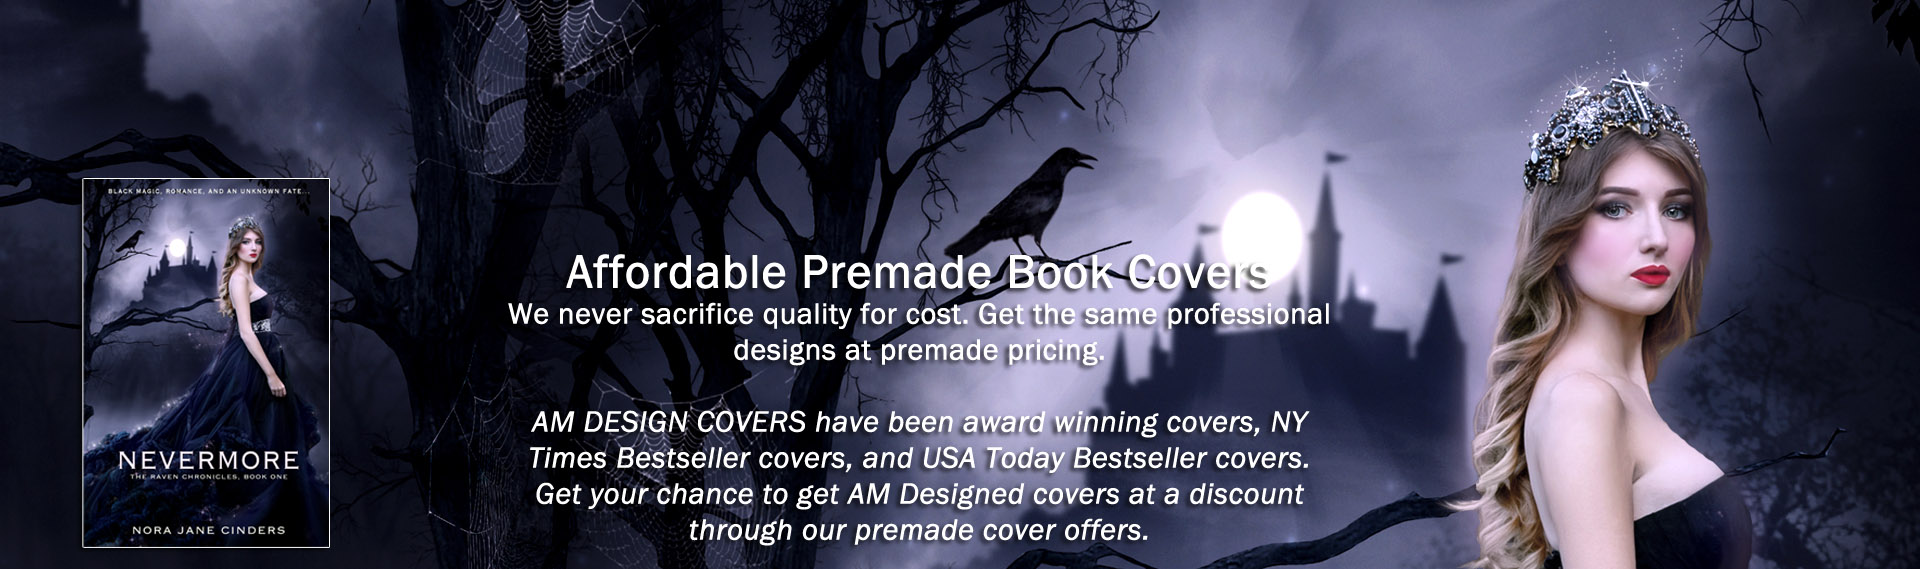 AM Design Studios - custom and premade ebook and book covers for authors and publishers